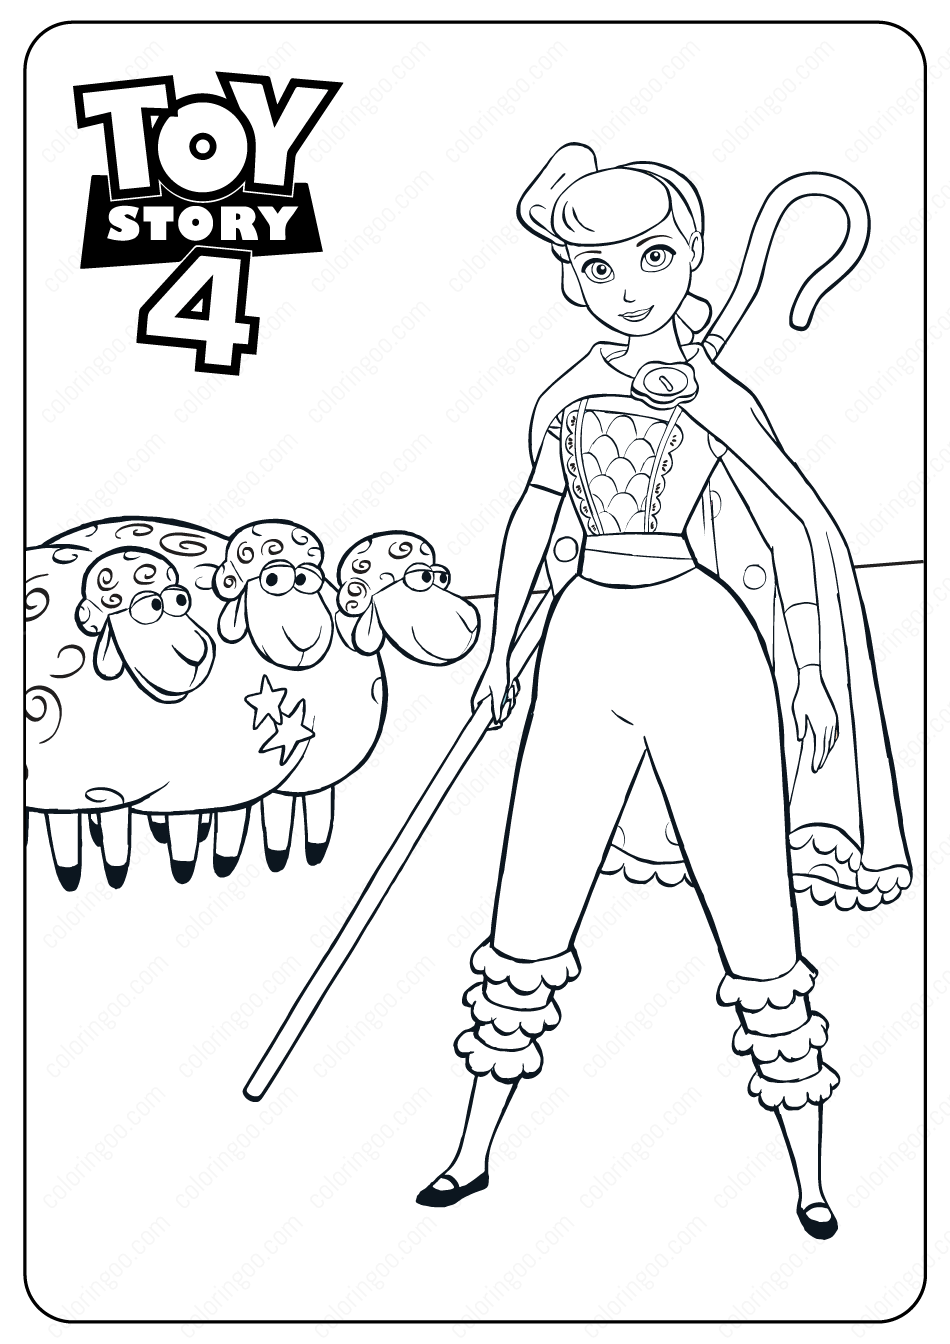 Free Printable Toy Story 4 Bo Peep PDF Coloring Pages